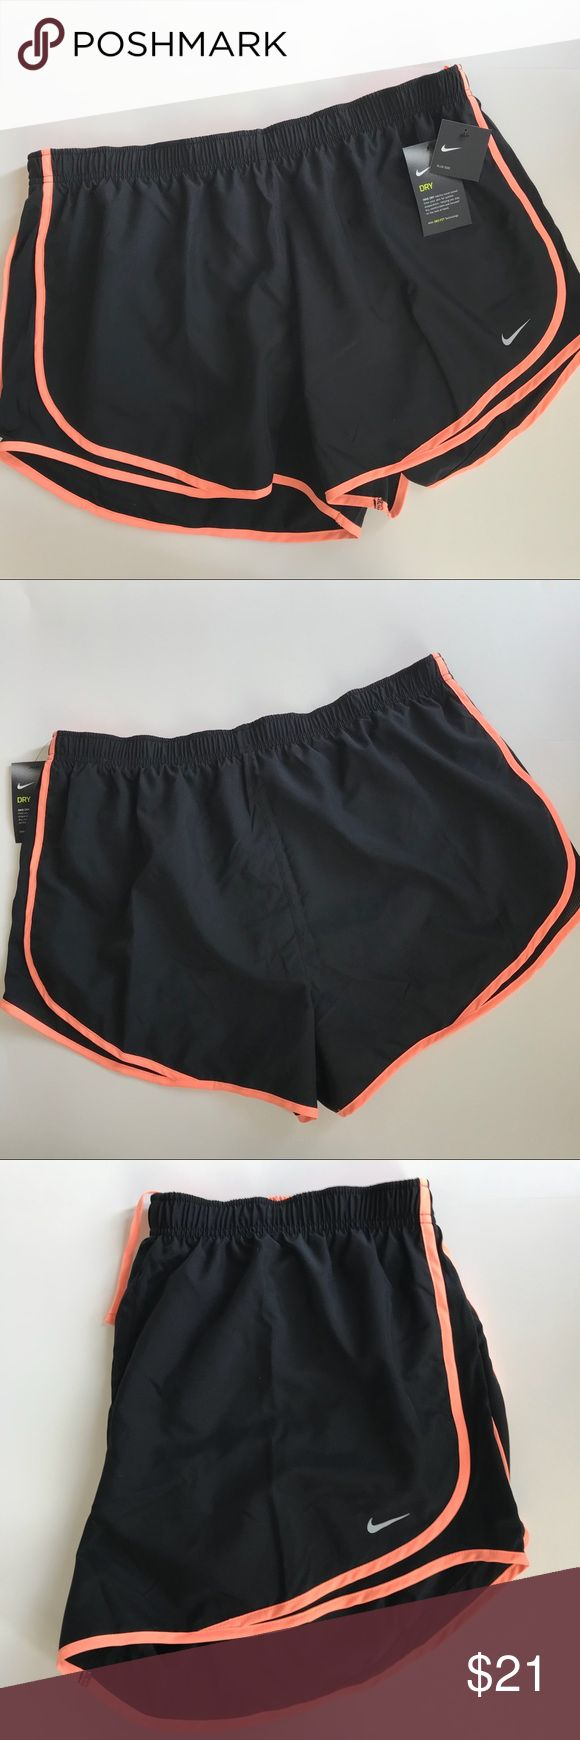 New NWT Nike Dri Fit running shorts black plus 2X Brand new with tags attached never worn. Nike plus size women's size 2X running shorts. Black with peach accent color. Lined. Drawstring elastic waist. Smoke free pet free home. Measures 37 inch waist, 14 Inches length, 3 inch inseam. Nike Shorts